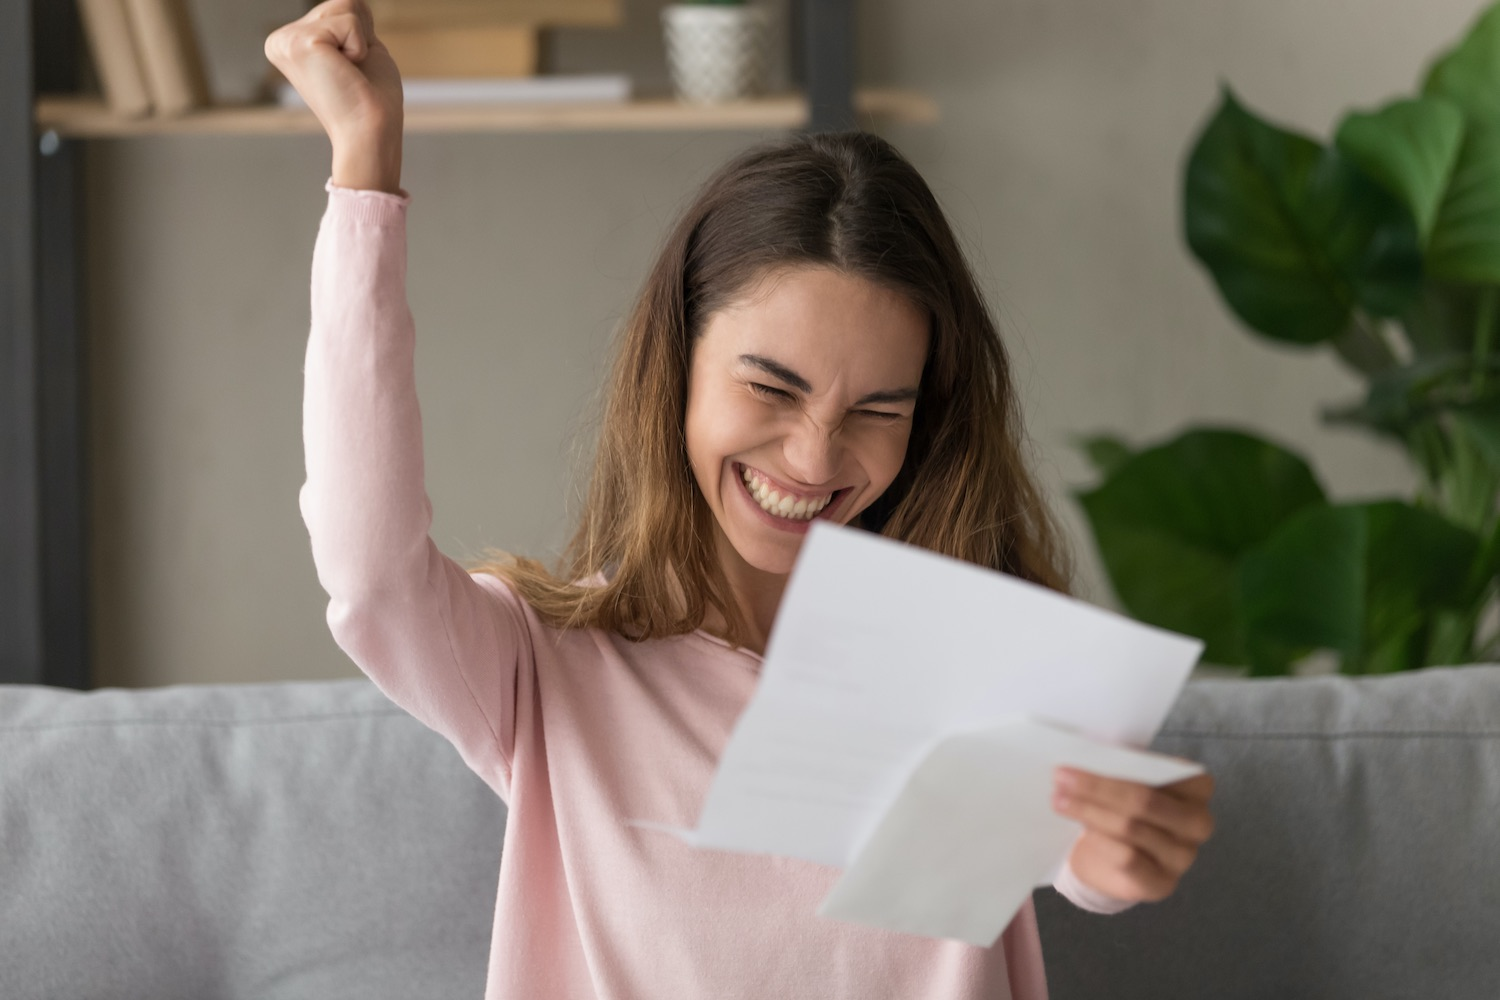 A happy lady holding and looking at a paper document with one hand and another hand with closed fist